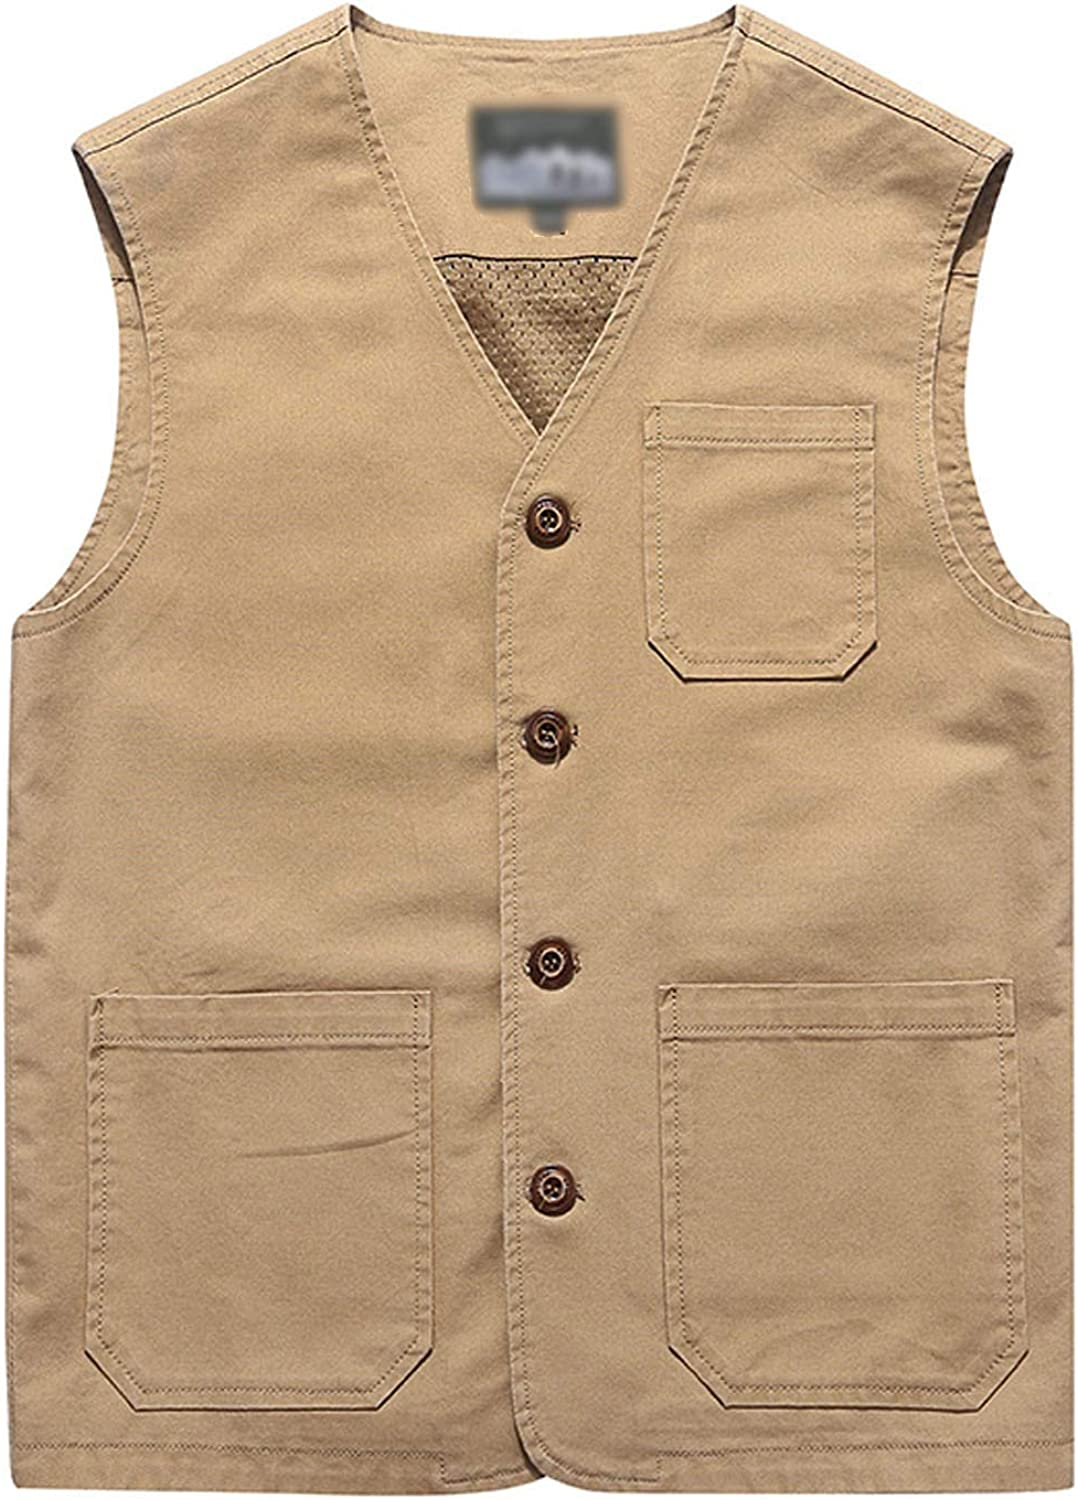 Men's Vintage Workwear Inspired Clothing Flygo Mens Casual Cotton Outdoor Fishing Travel Safari Photo Vest with Pockets $32.98 AT vintagedancer.com